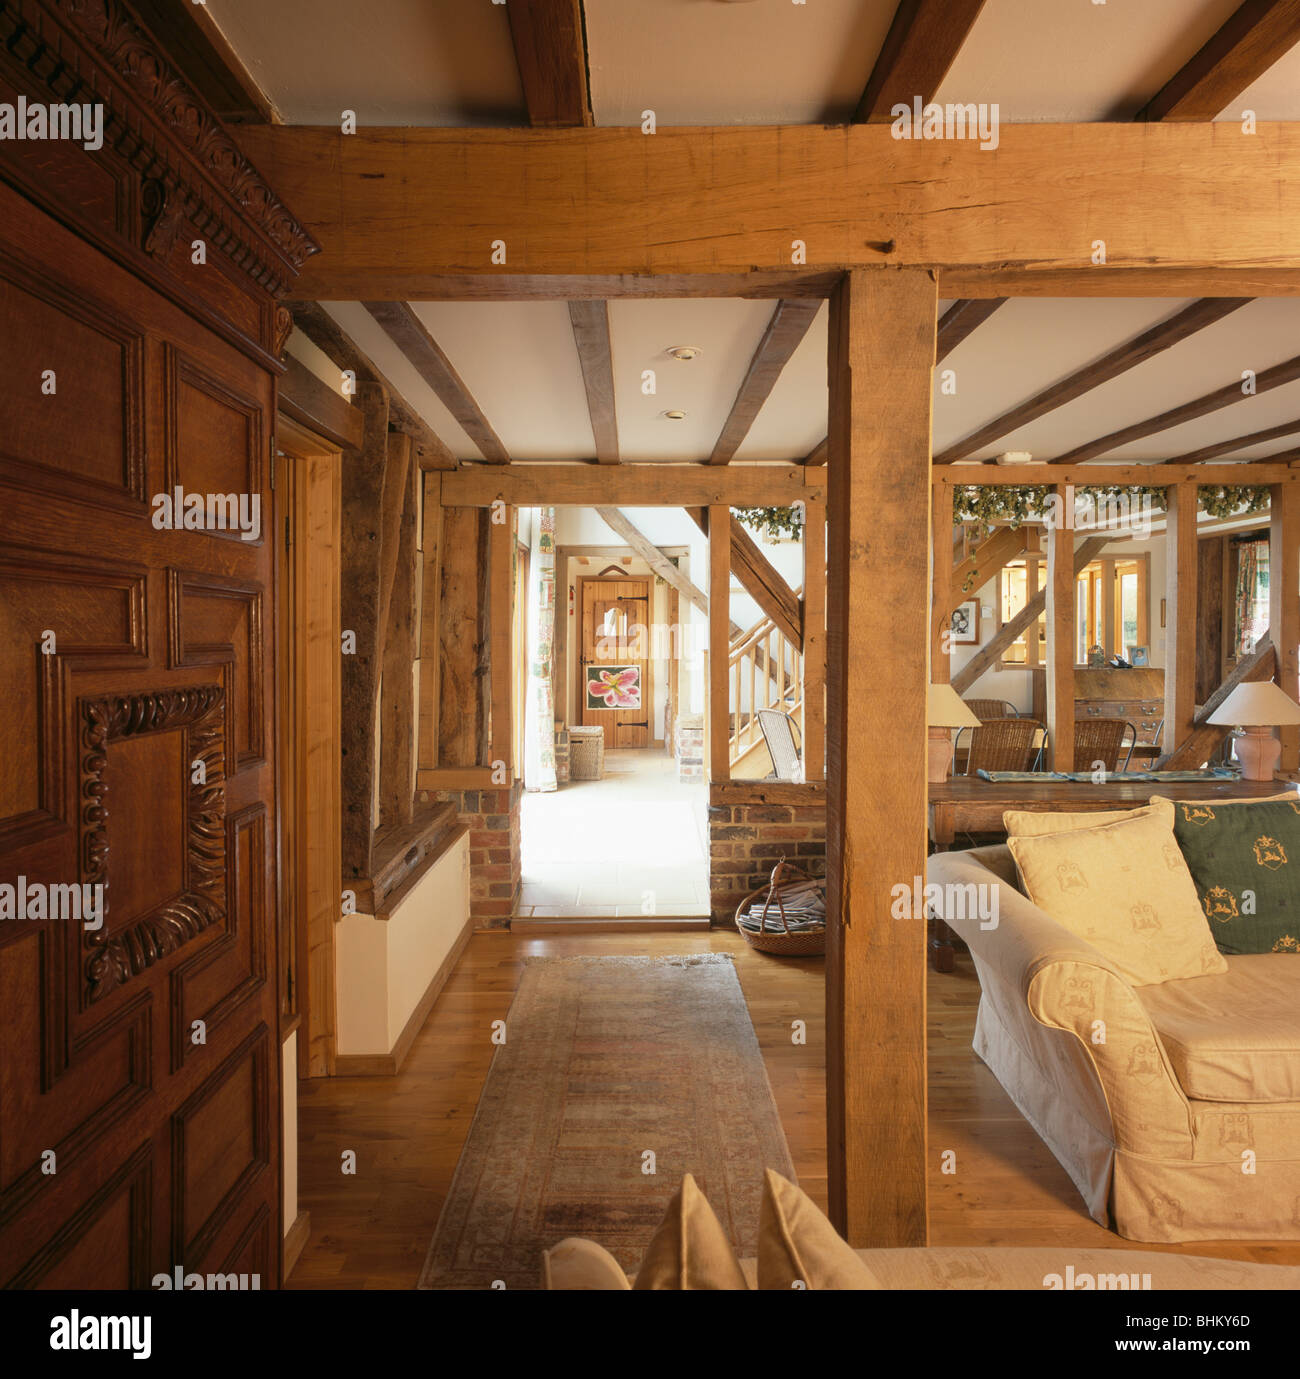 Wood Support Beams ~ Large wooden support and ceiling beams in living room